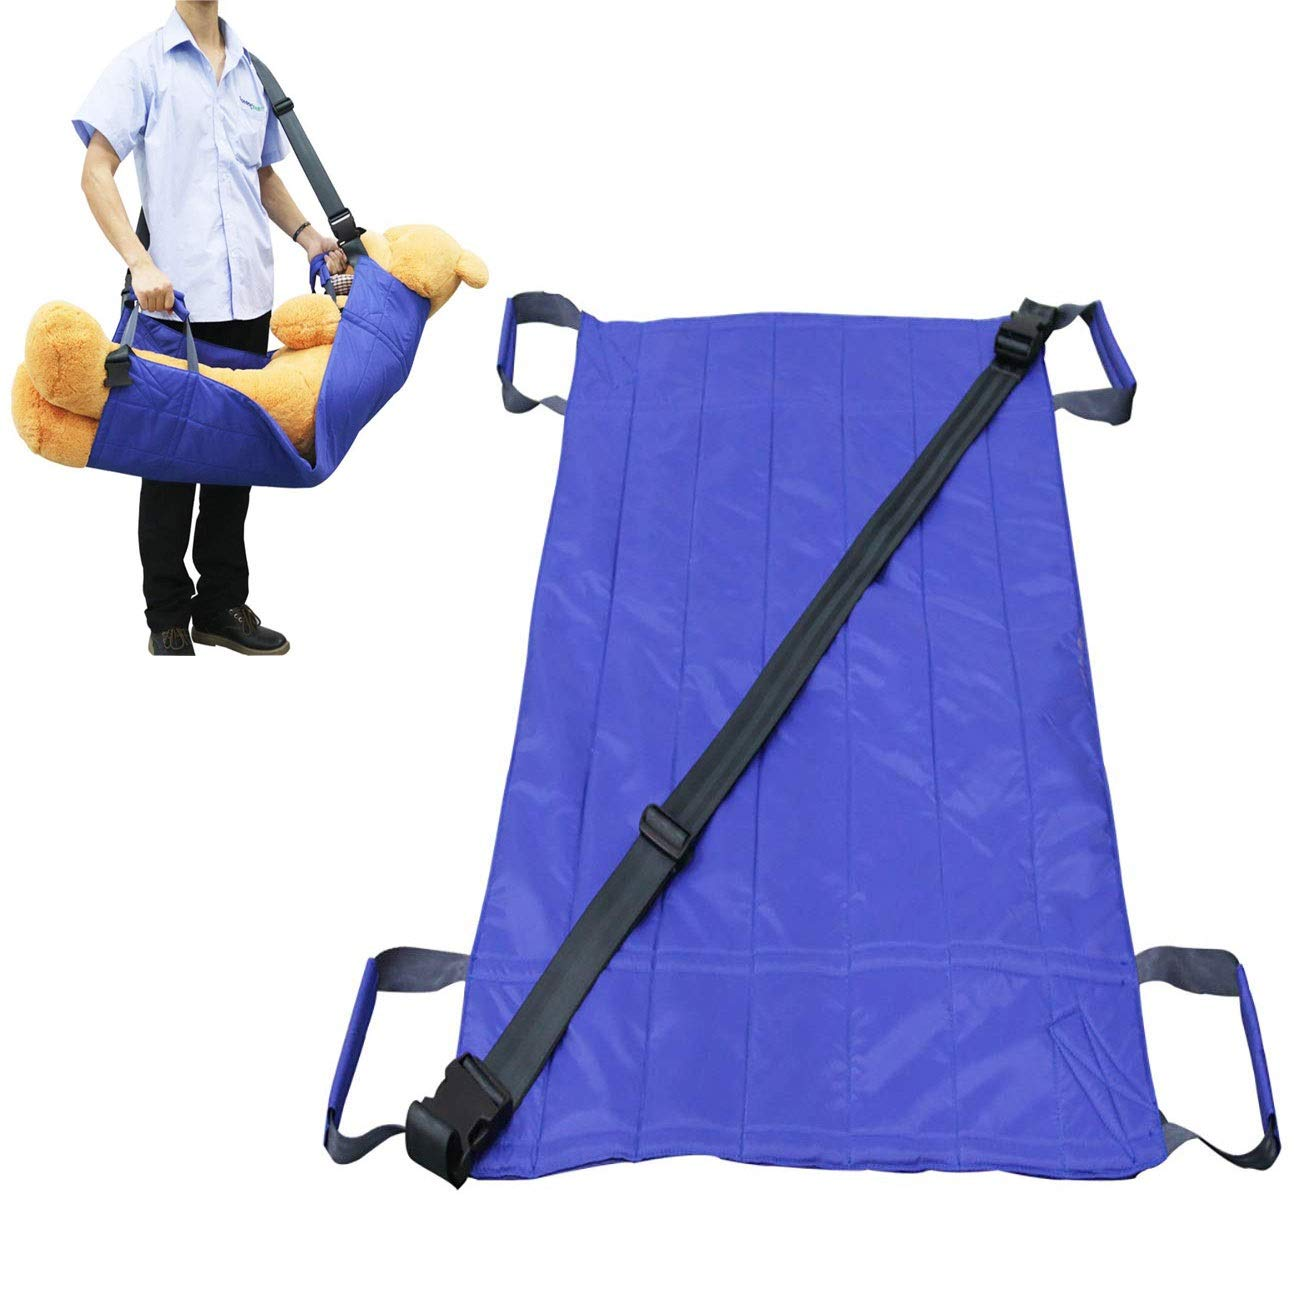 YxnGu Transfer Boards Slide Belt - Patient Lift Bed Assistance Devices - Patient Transport Lift Sling - Waterproof Positioning Bed Pad with 8 Handles (Size : 10572cm) by YxnGu